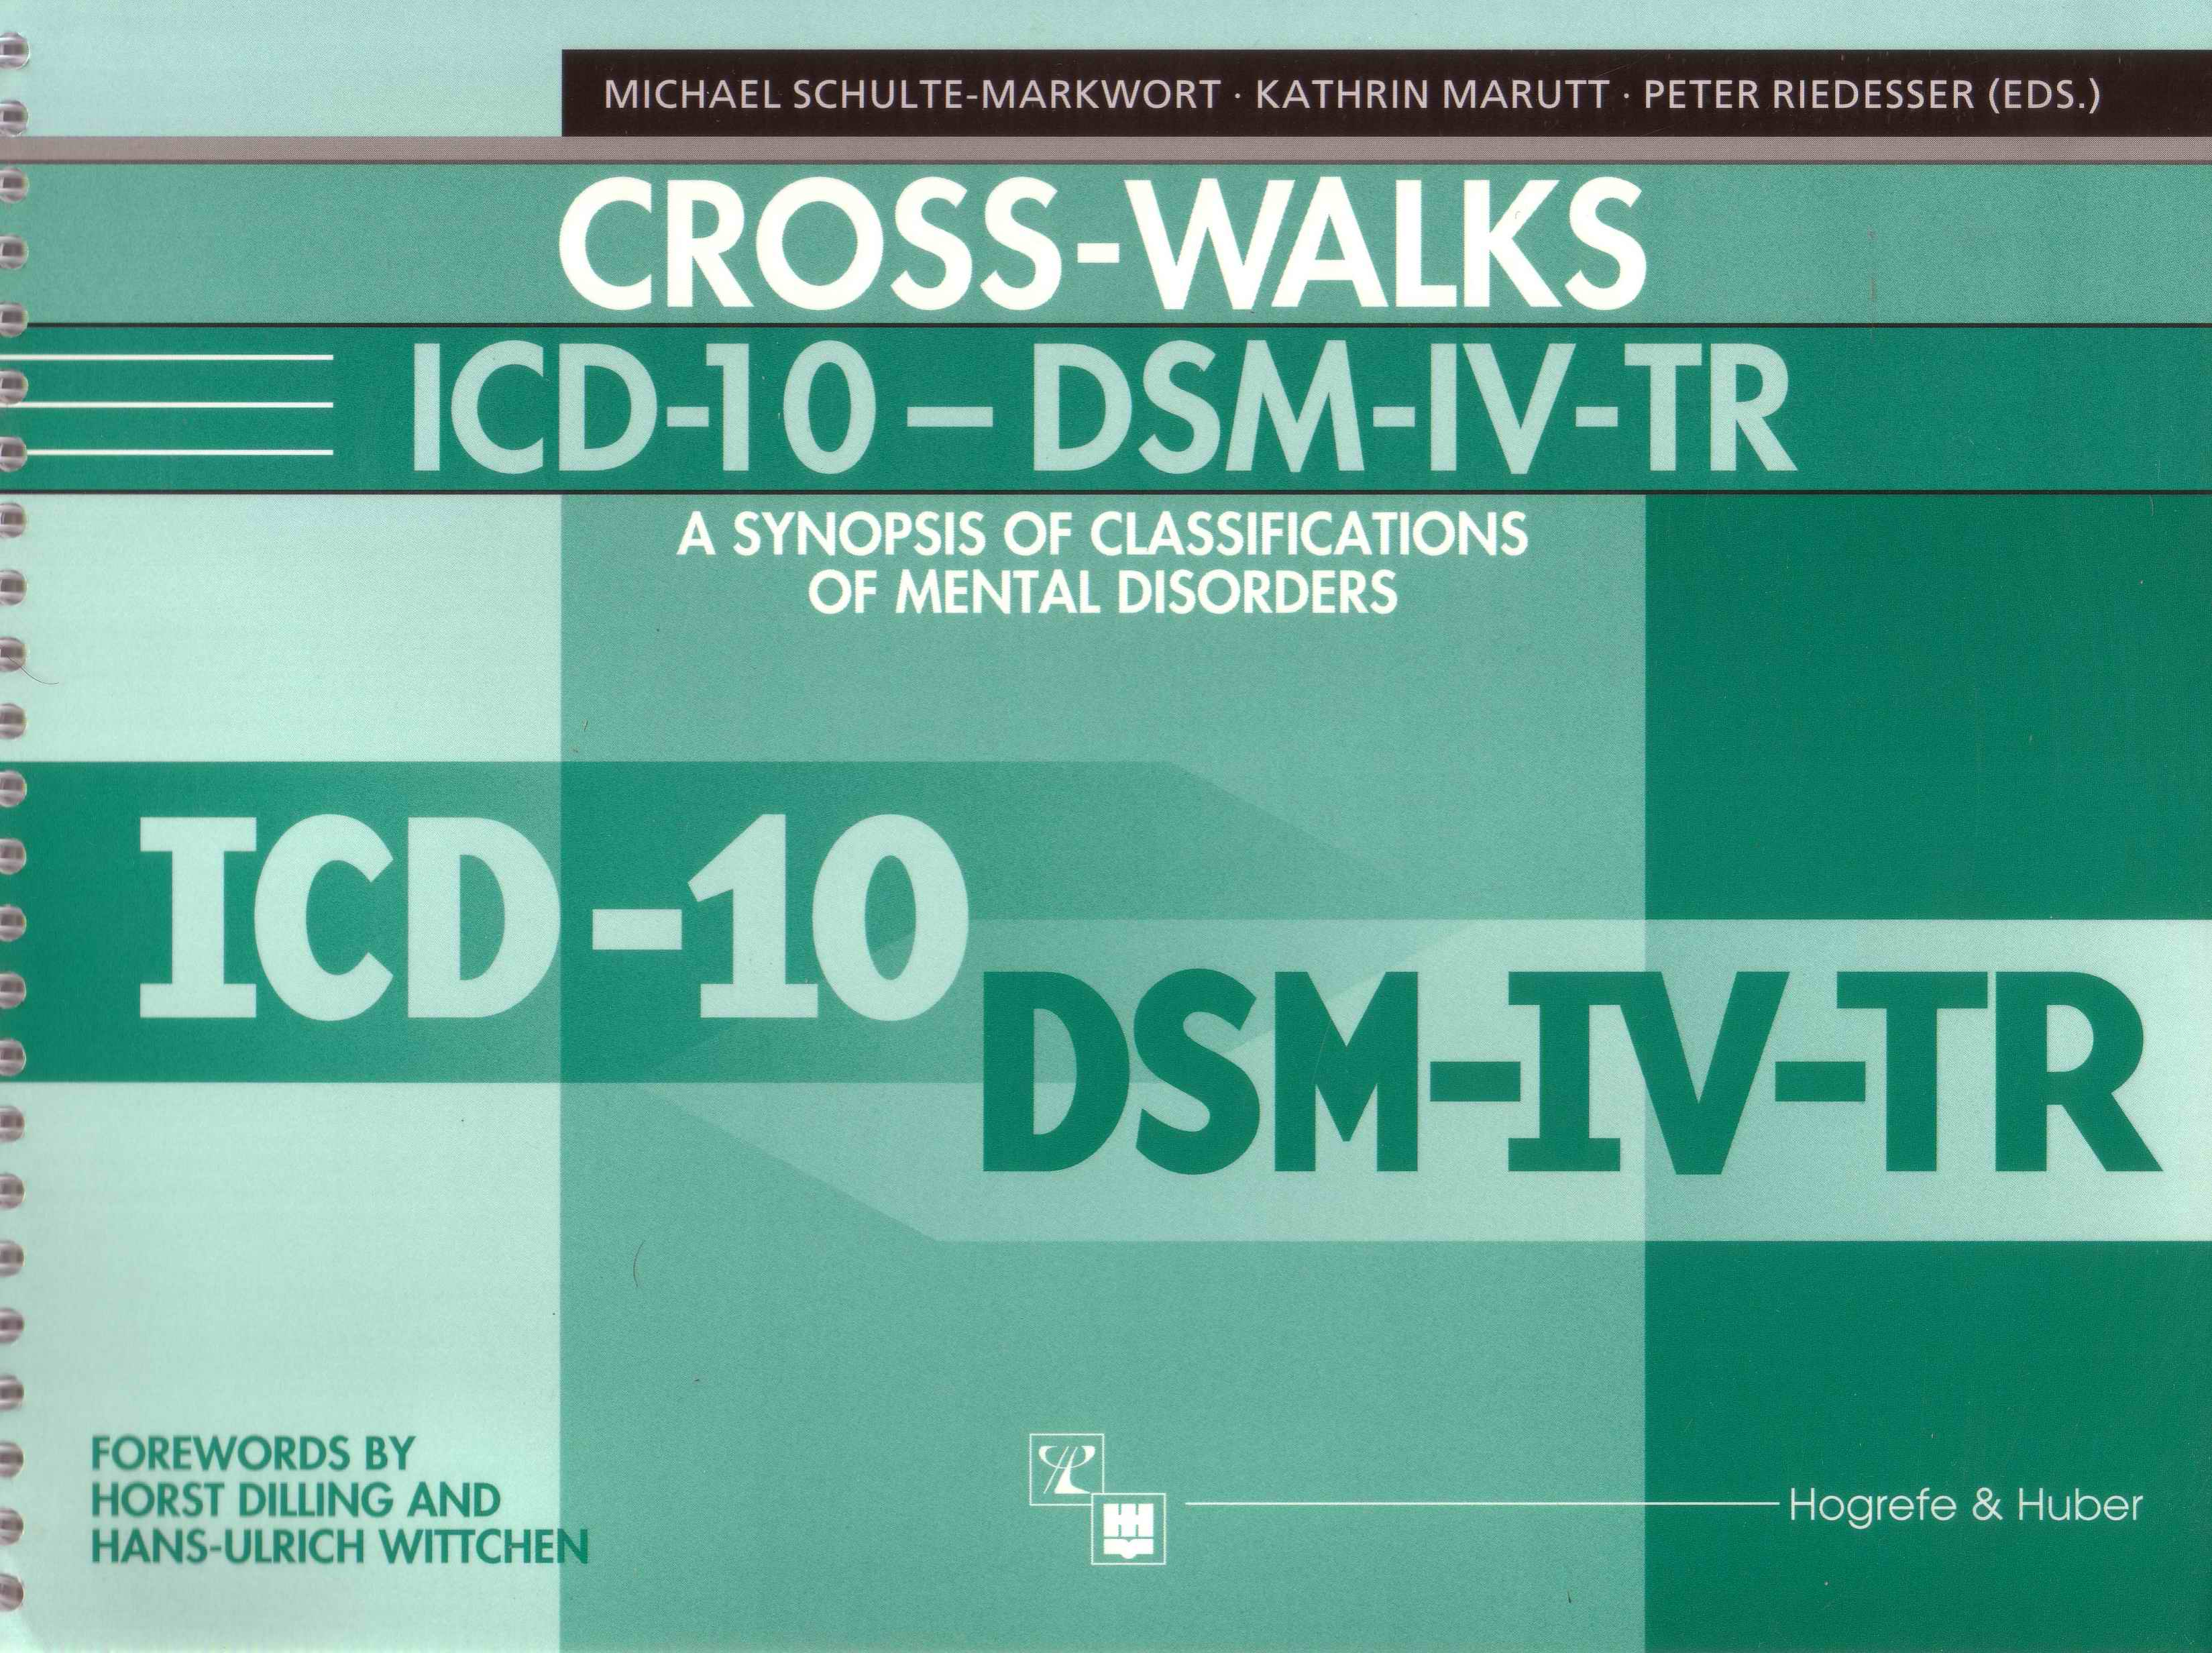 Cover Used Icd 10 Books For Sale